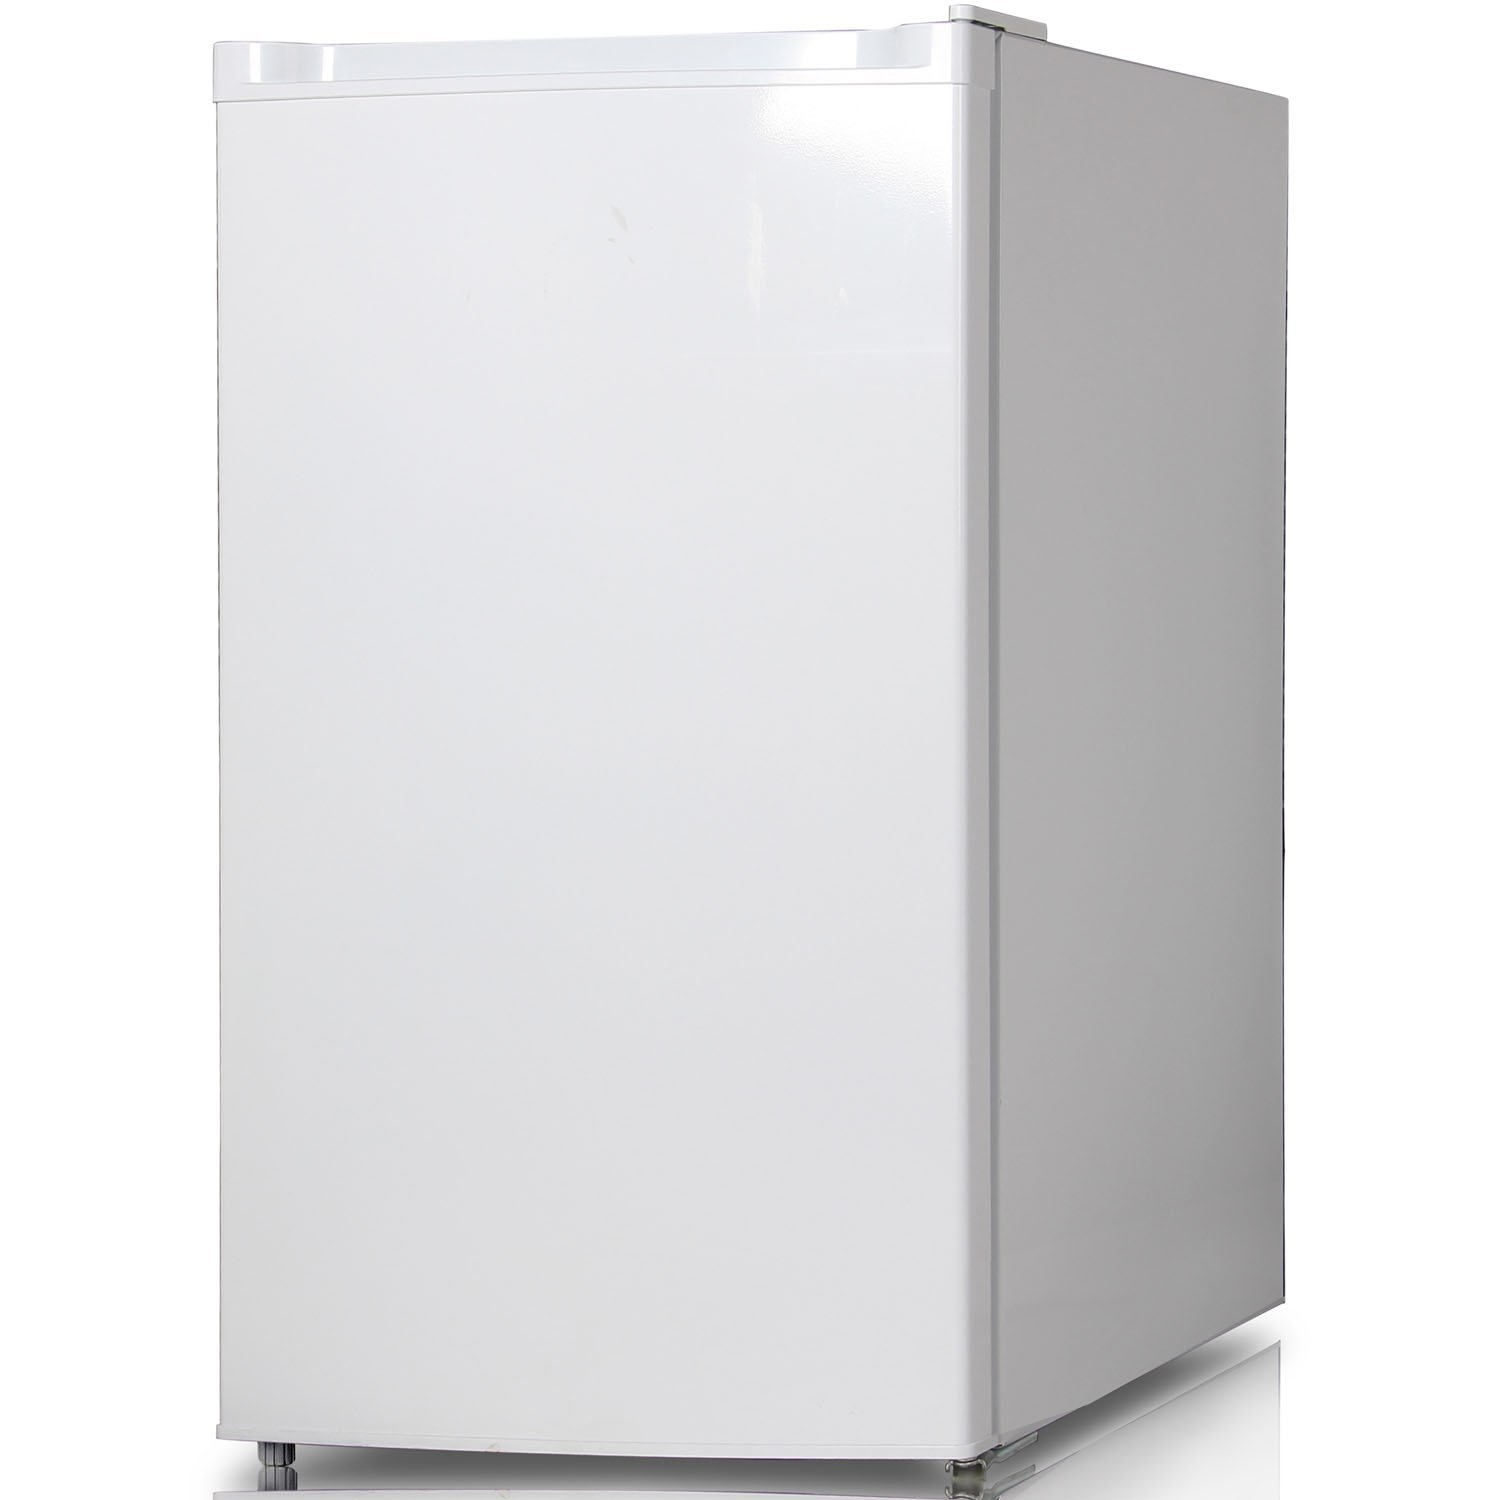 Keystone Kstrc44cw Compact Single Door Refrigerator With